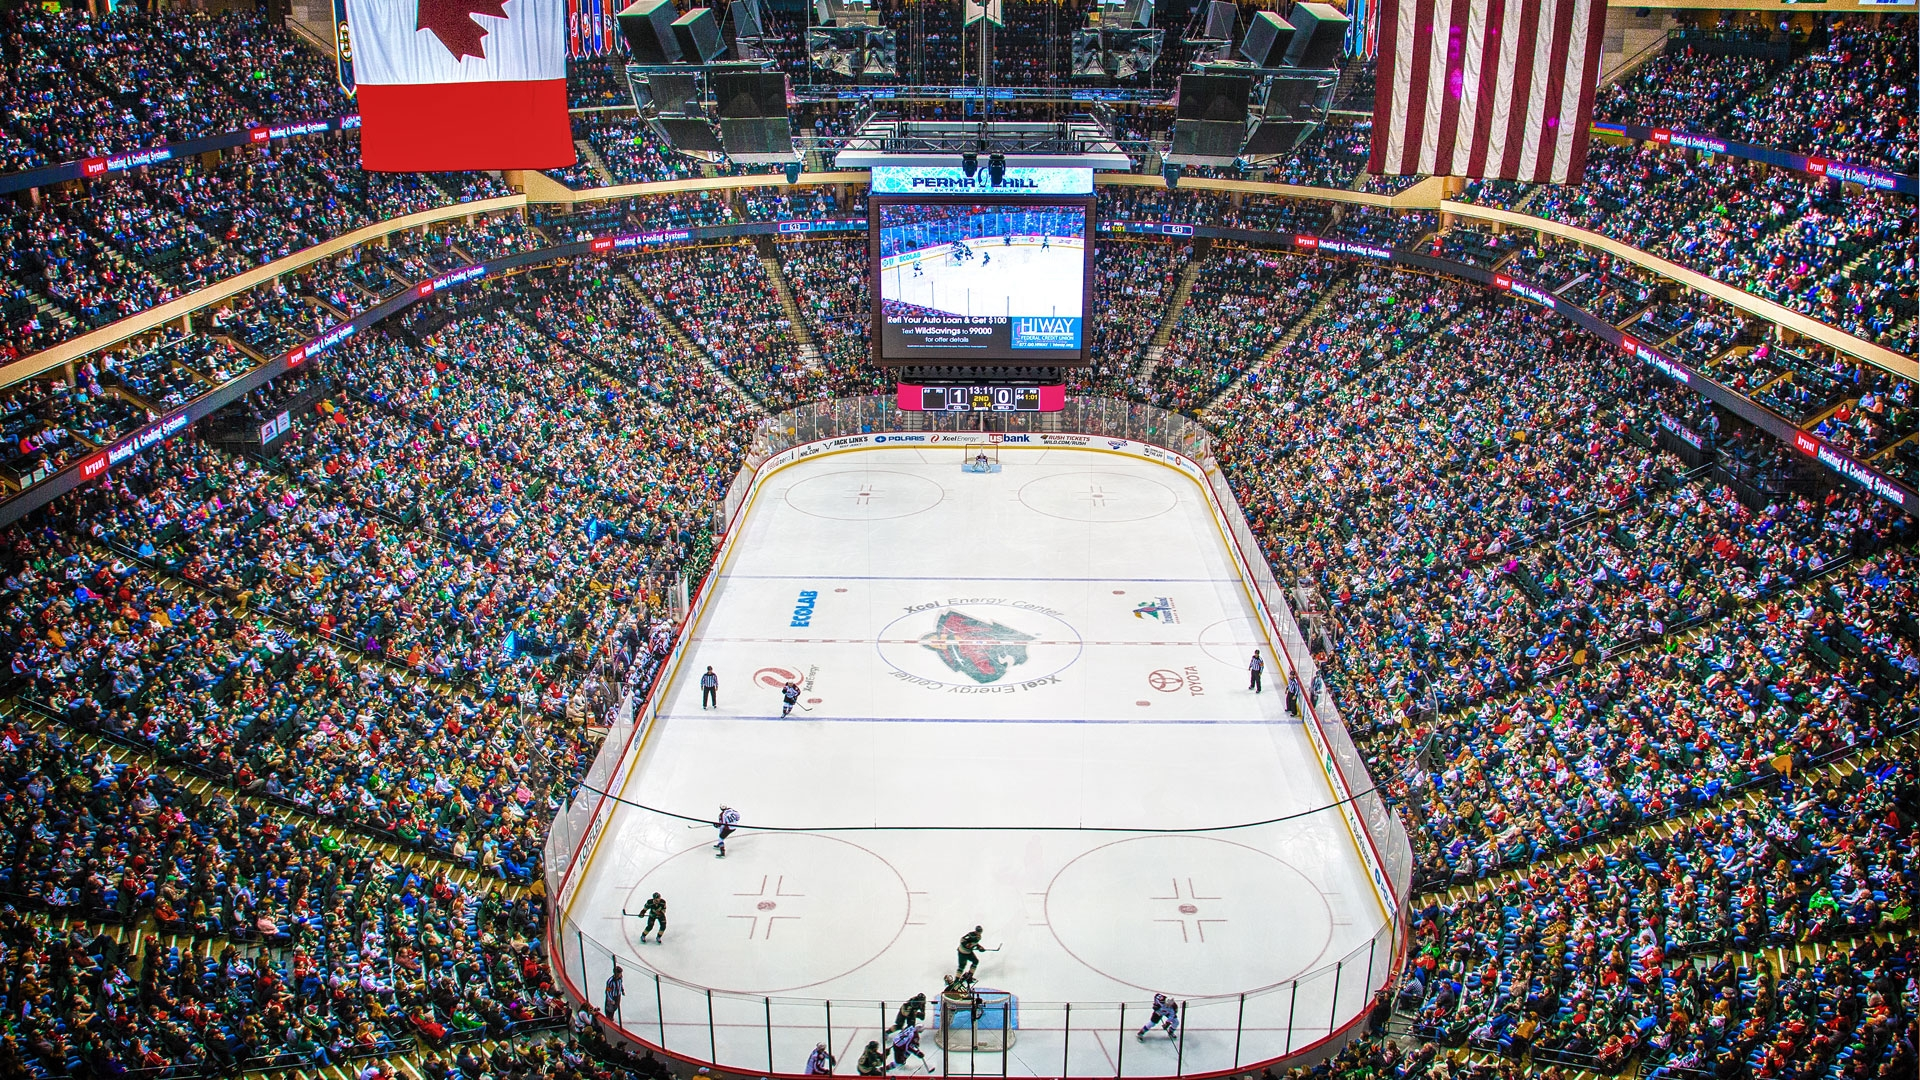 The award-winning Xcel Energy Center is home to the Minnesota Wild and hosts other national championships in various sports as well as the biggest names in music.